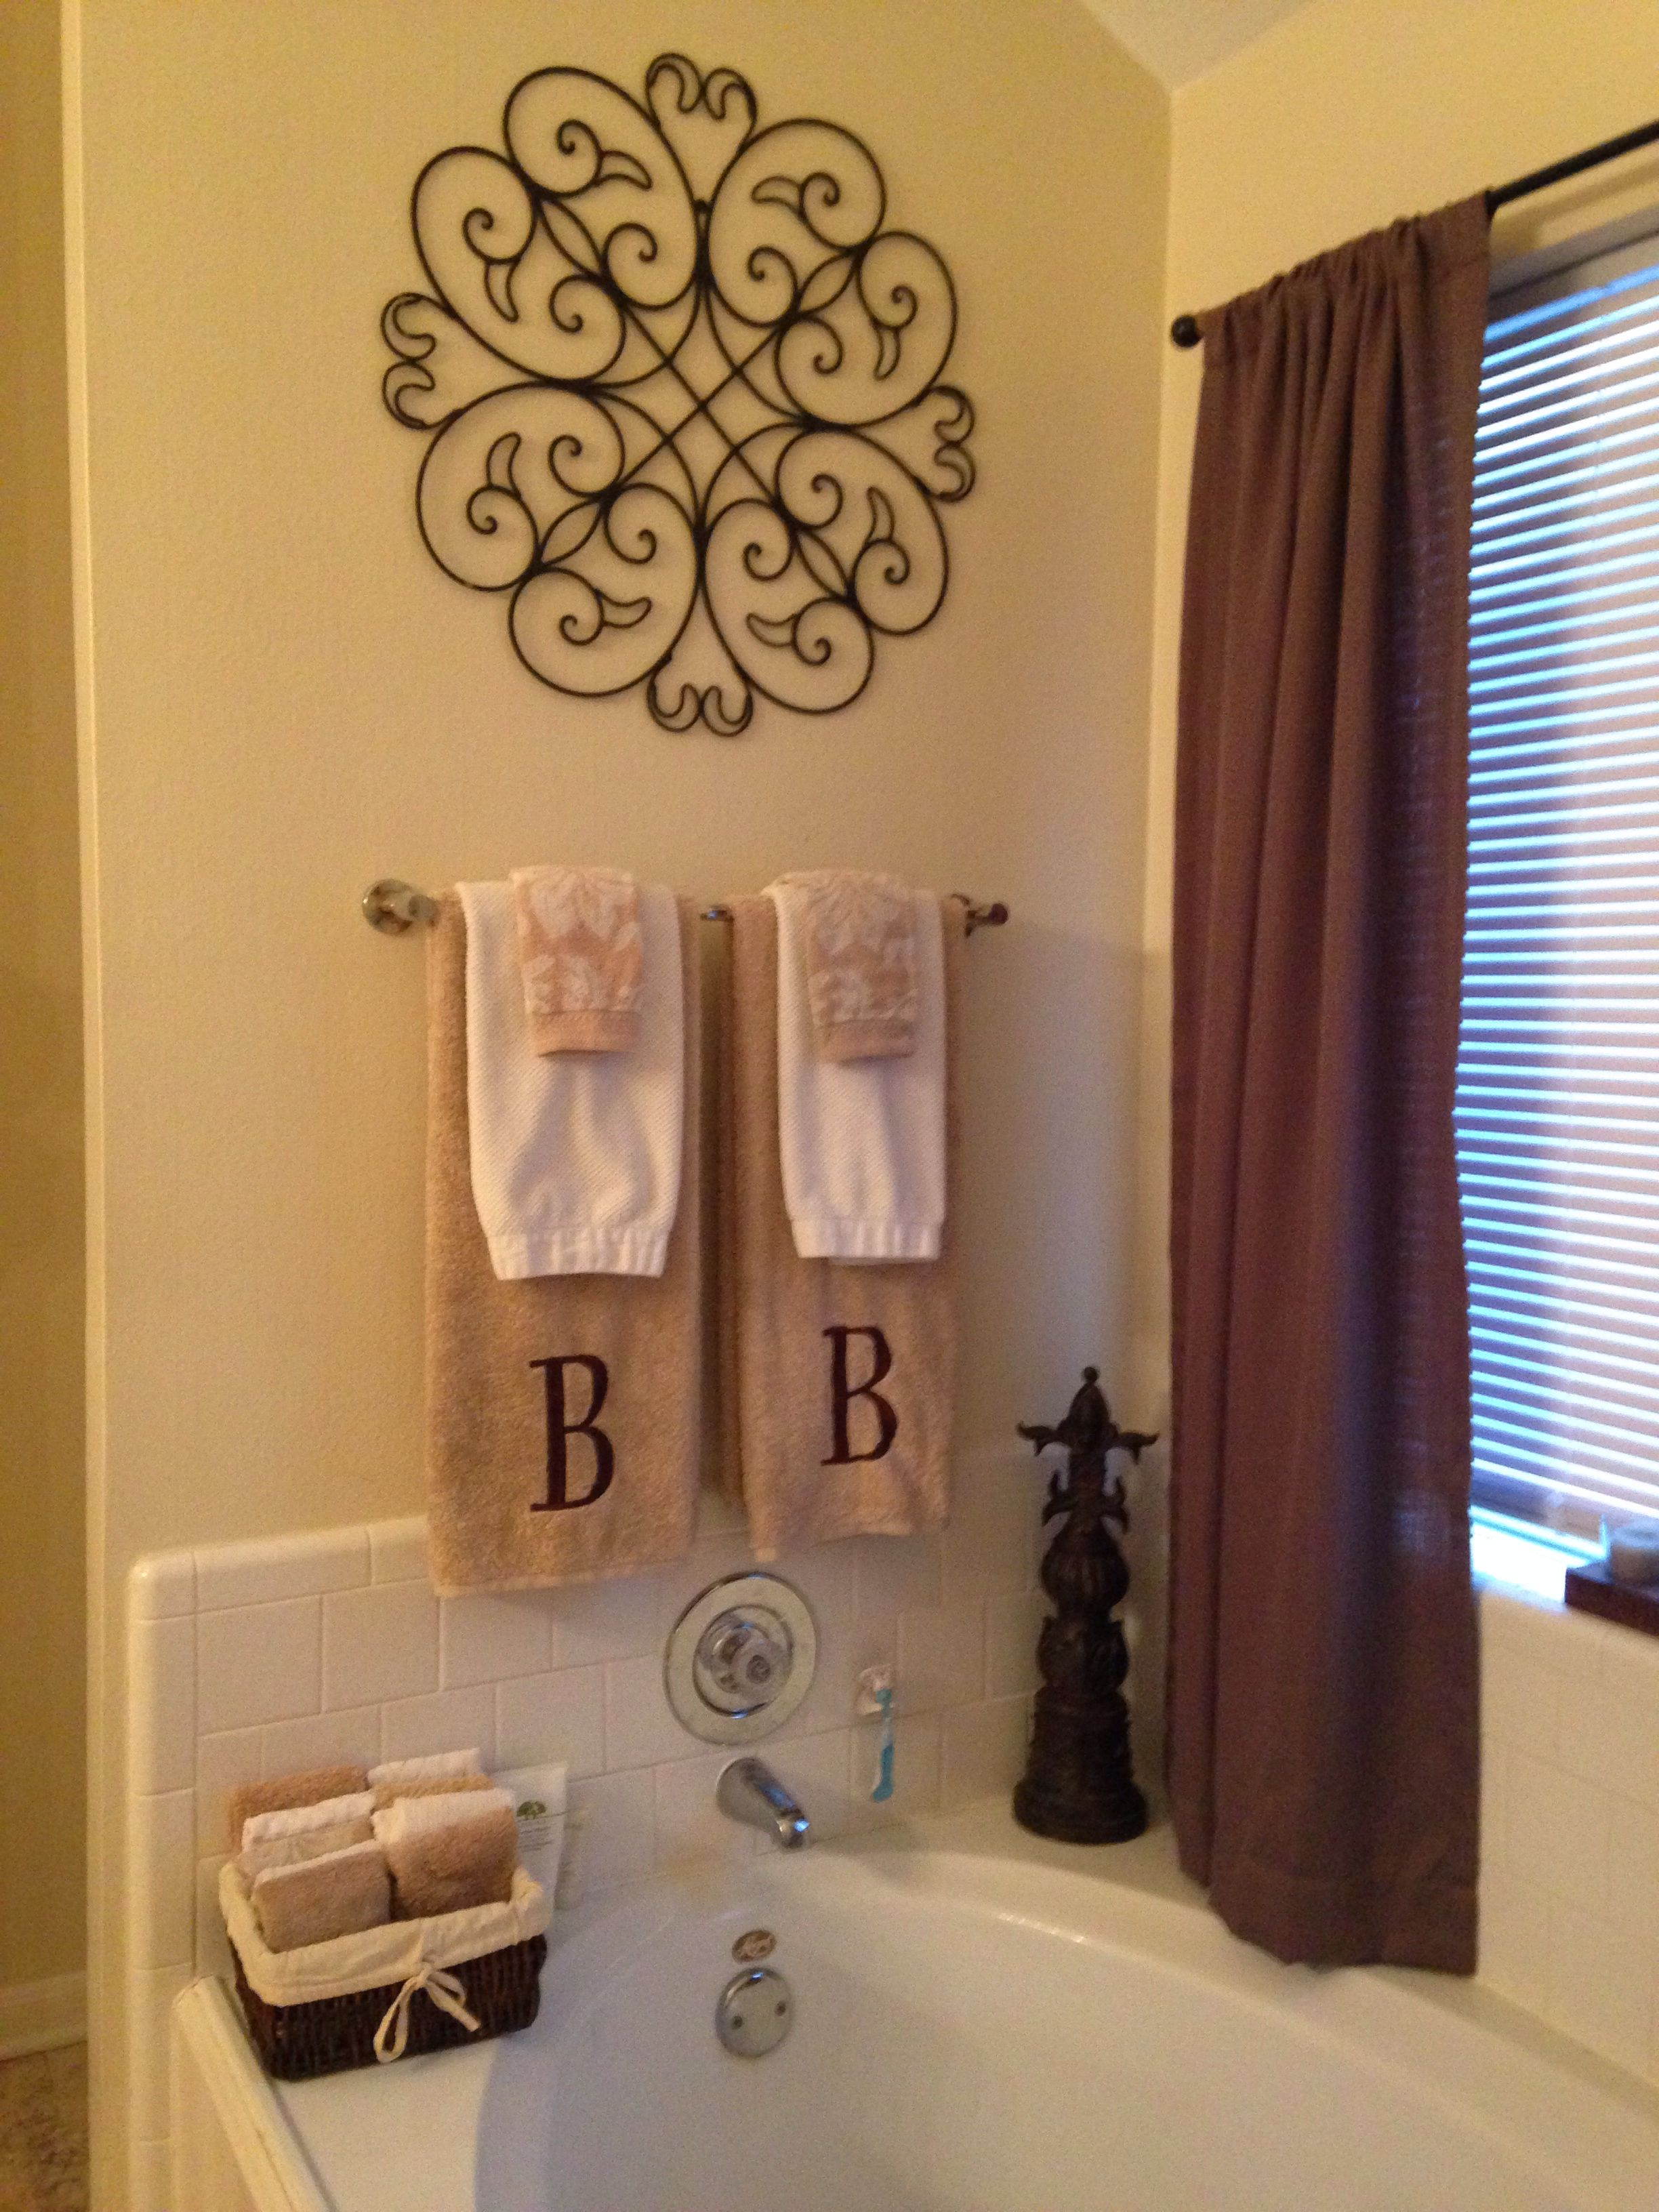 Bathroom Wall Art And Decor Master Bathroom Decor My Diy Projects Pinterest